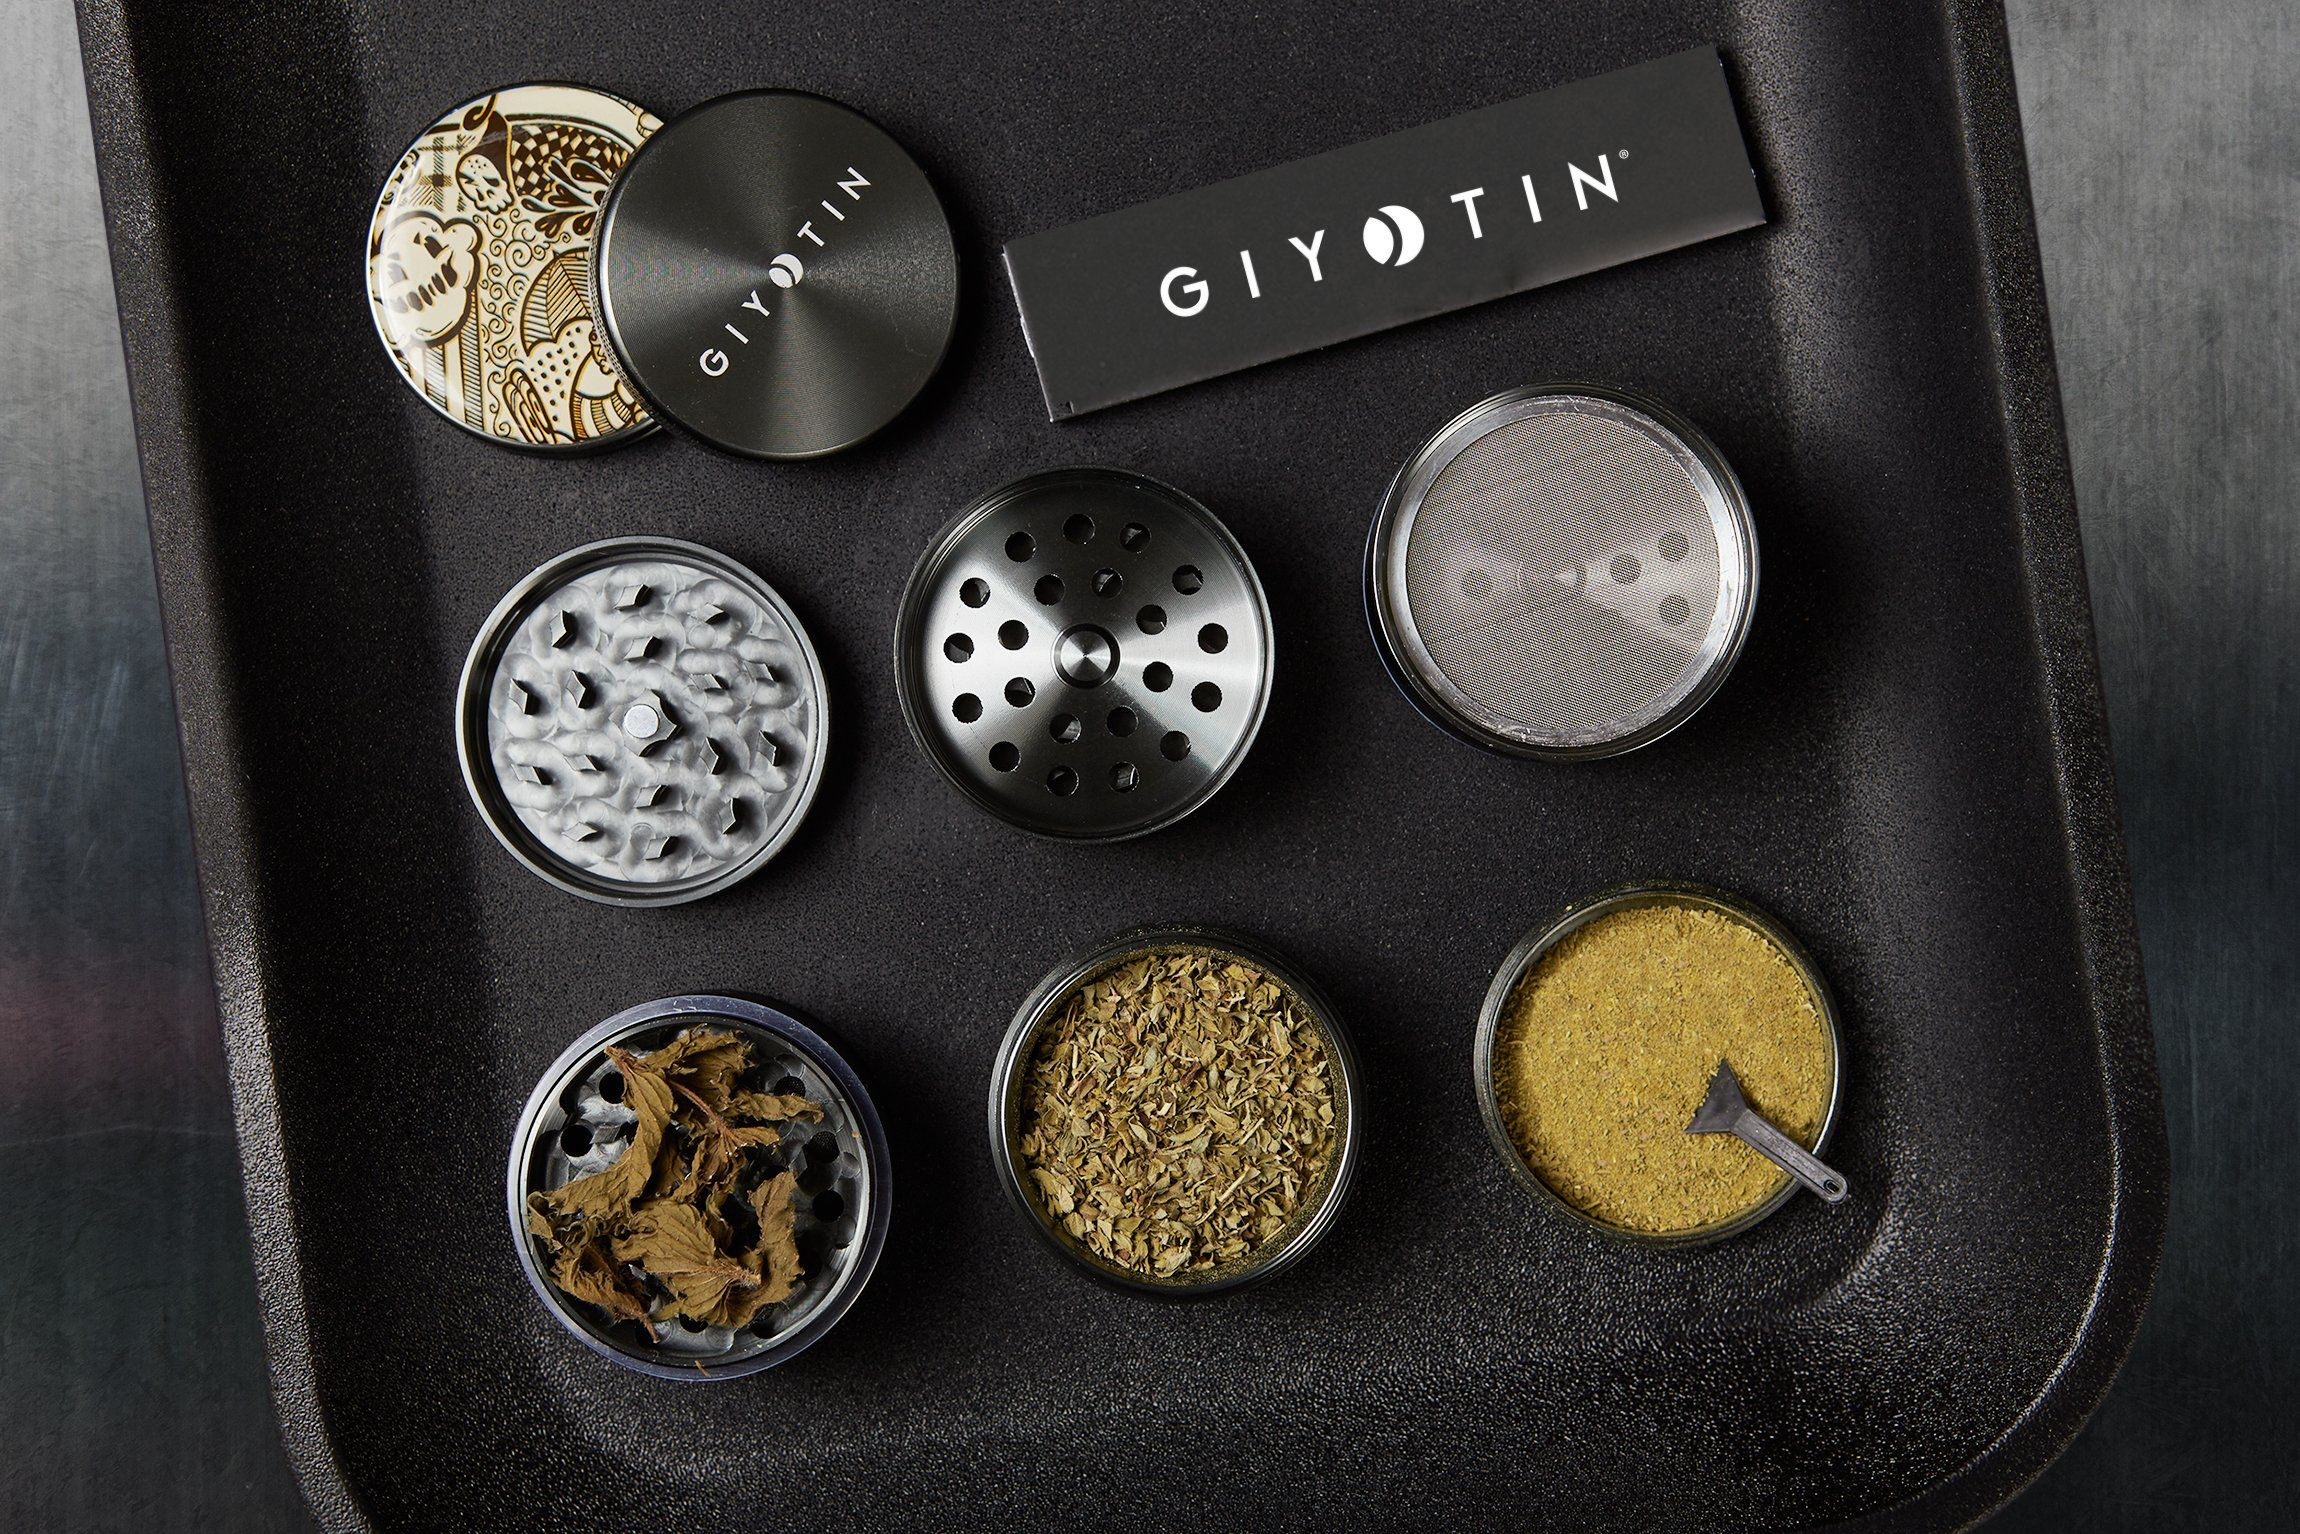 Giyotin 4 Piece Spice Herb Grinder With Pollen And Keef Catchers Includes Pollen Scraper And Travel Bag 2 2 Anodised Alumi Herb Grinder Kitchen Dining Dining